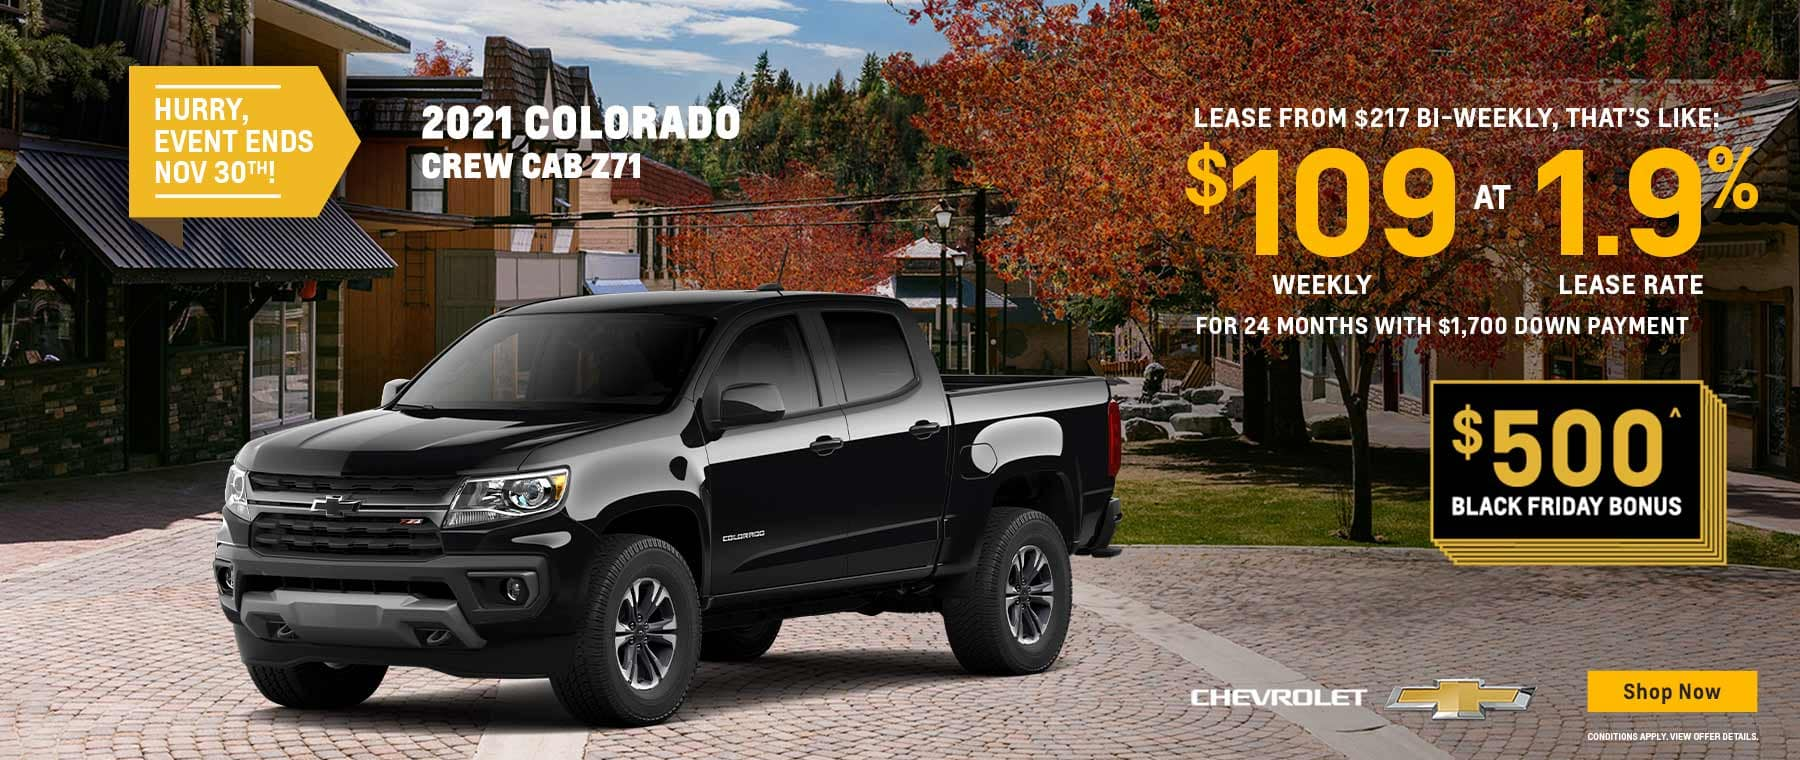 COLORADO_2020_NOV_WST_Chevy_T3_EN_1800x760_Black-Friday_Multi_v2_FNL